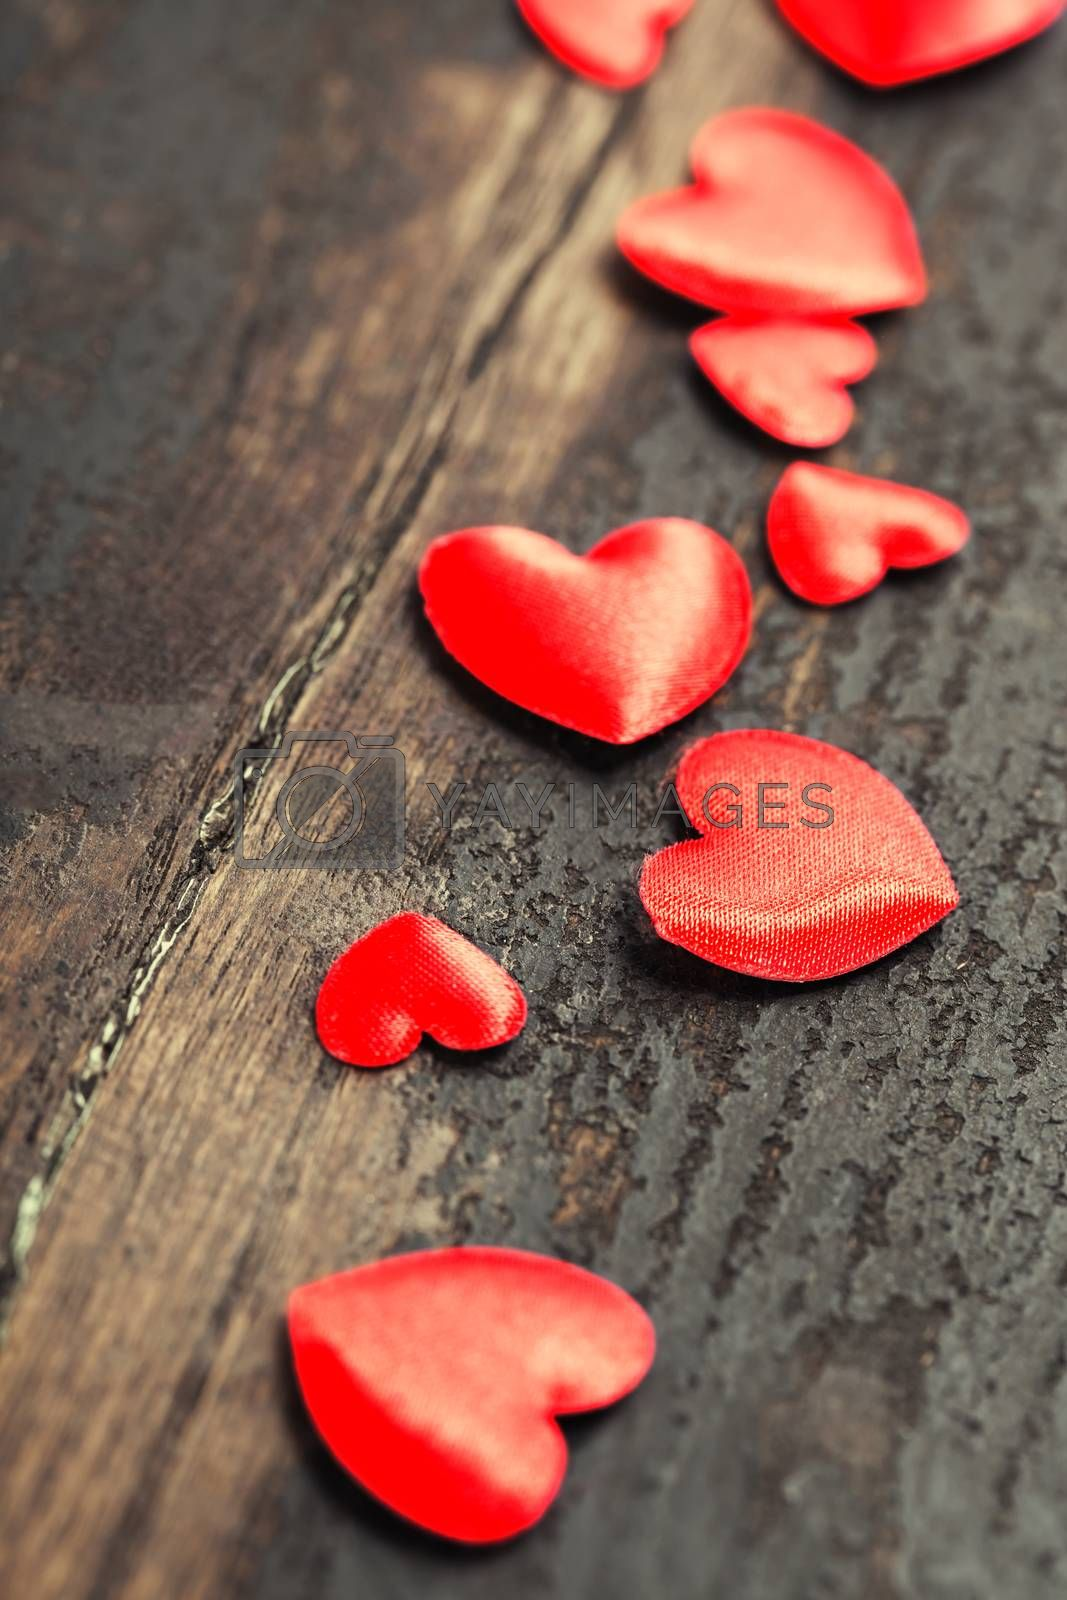 Valentines Day background with hearts on wooden background